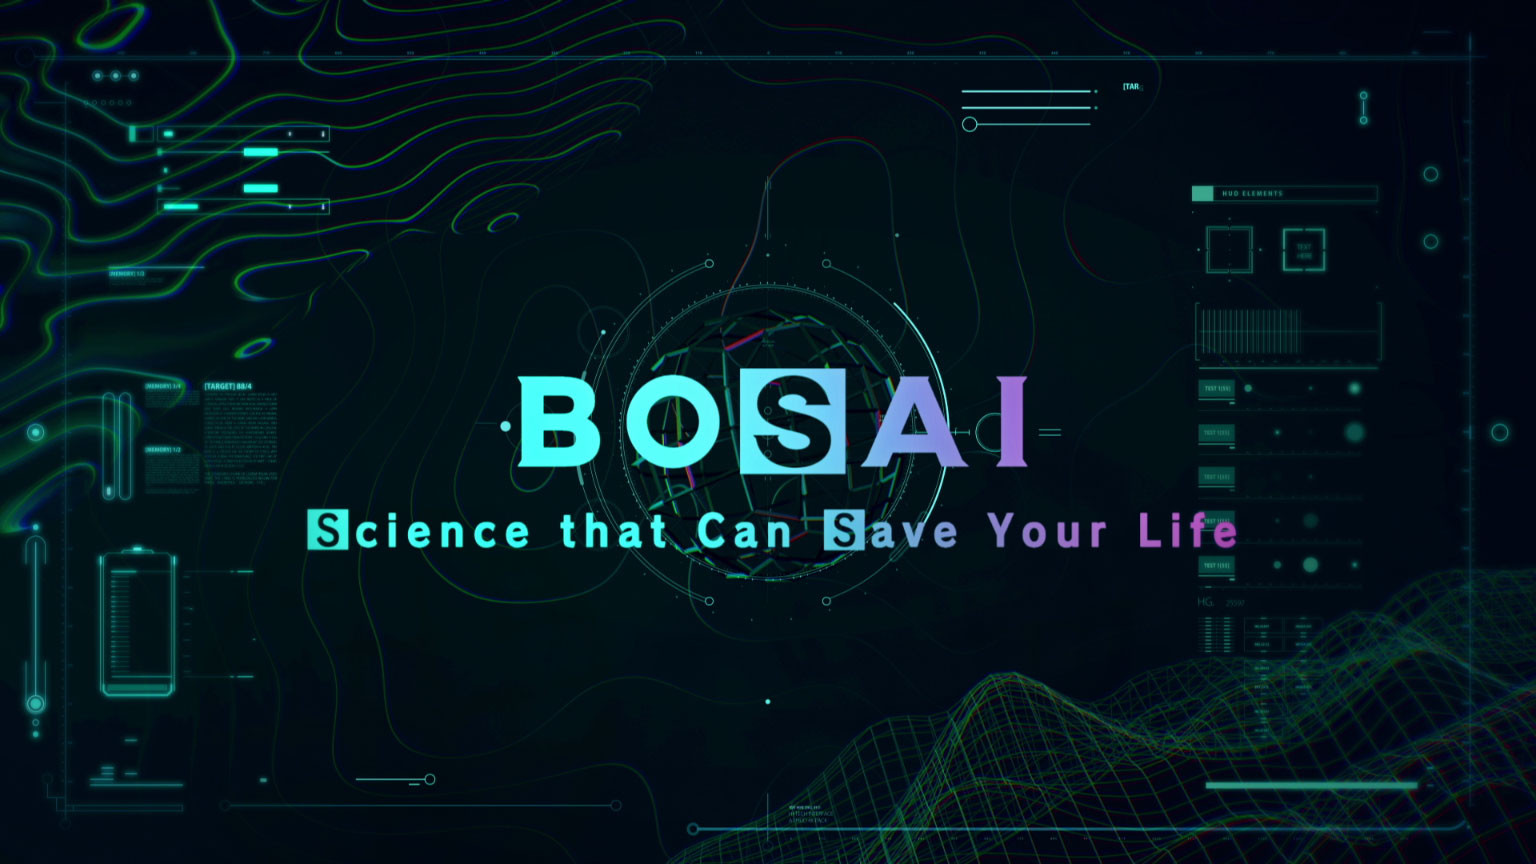 BOSAI: Science that Can Save Your Life